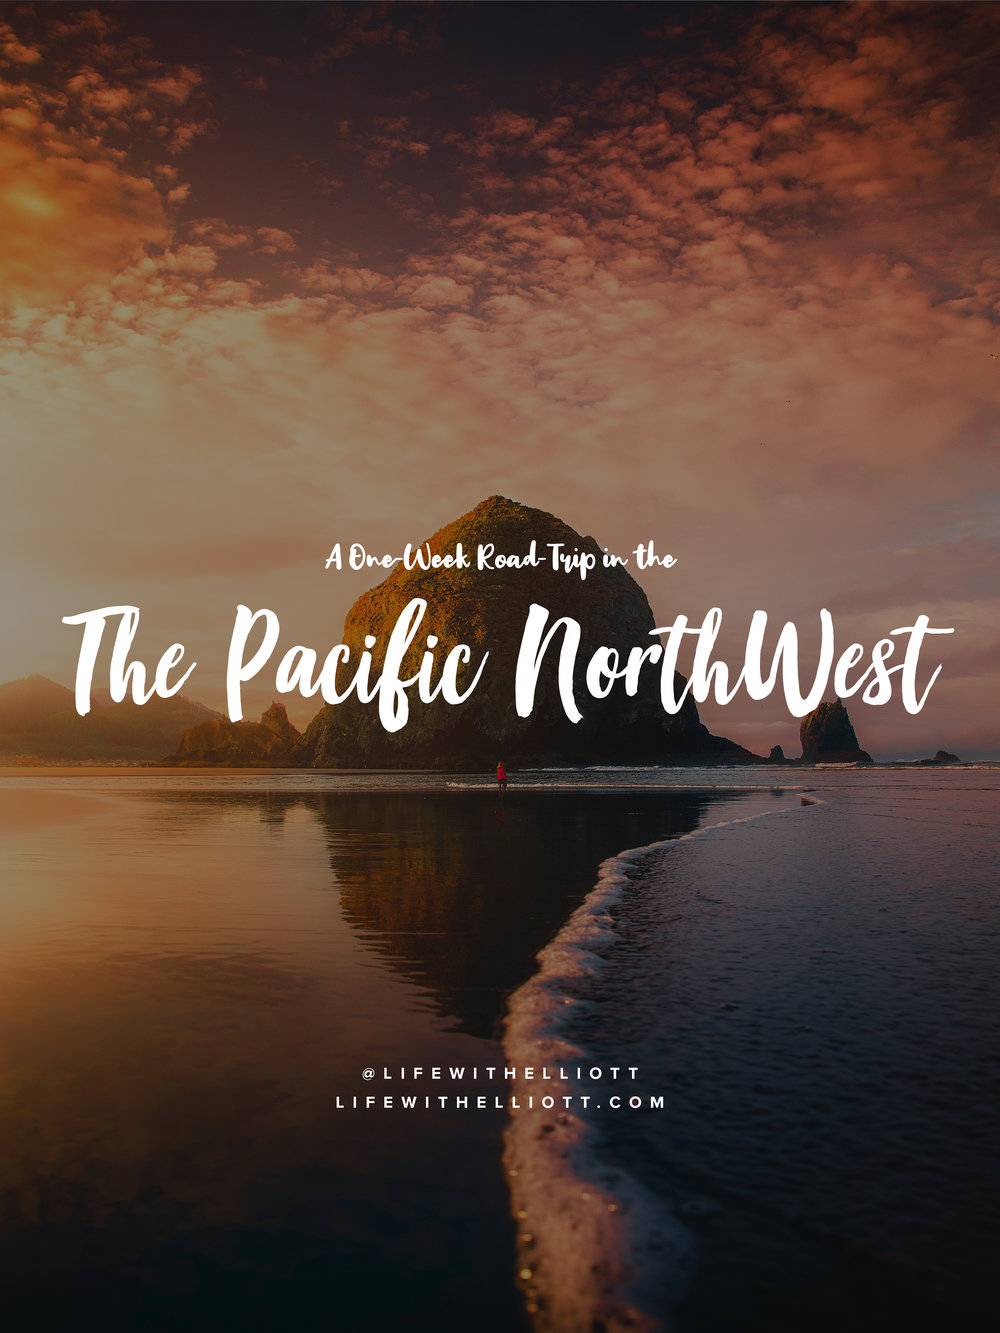 What to See on a One-Week Road-trip in the Pacific Northwest by LifewithElliott